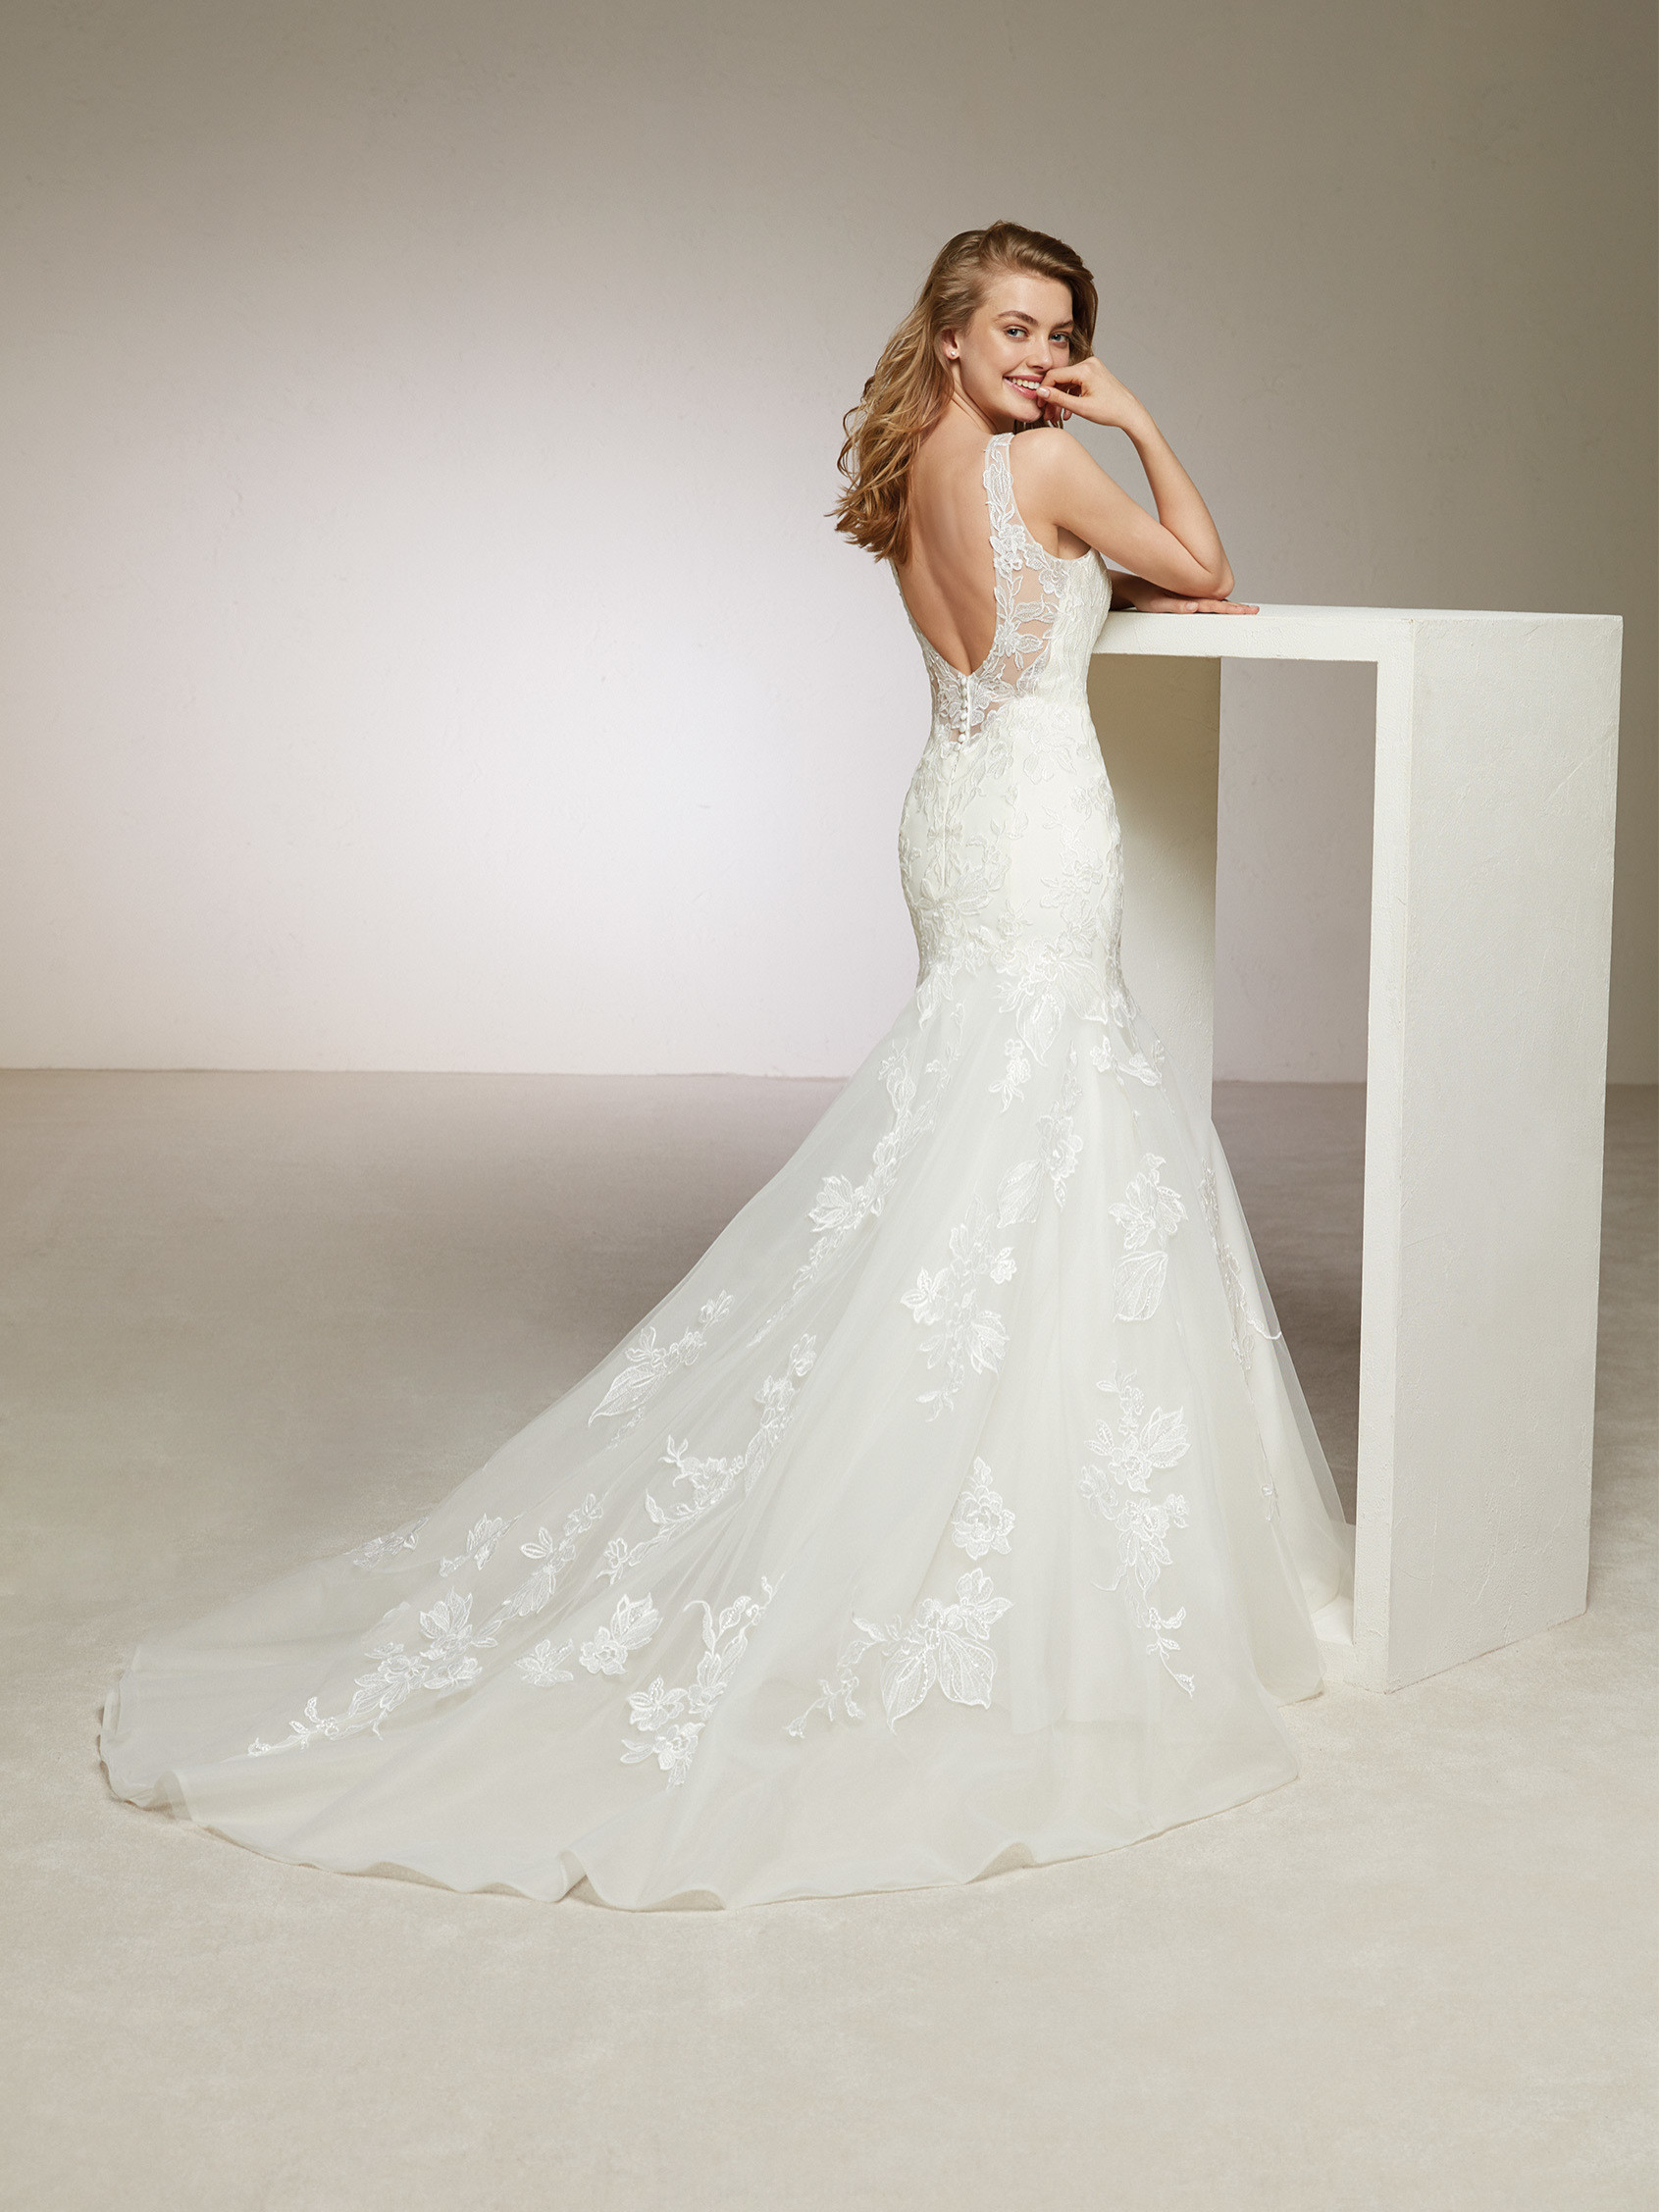 WEDDING DRESS SALE, PRONOVIAS DIVIS, UK8, £900 - Romantique Bridal